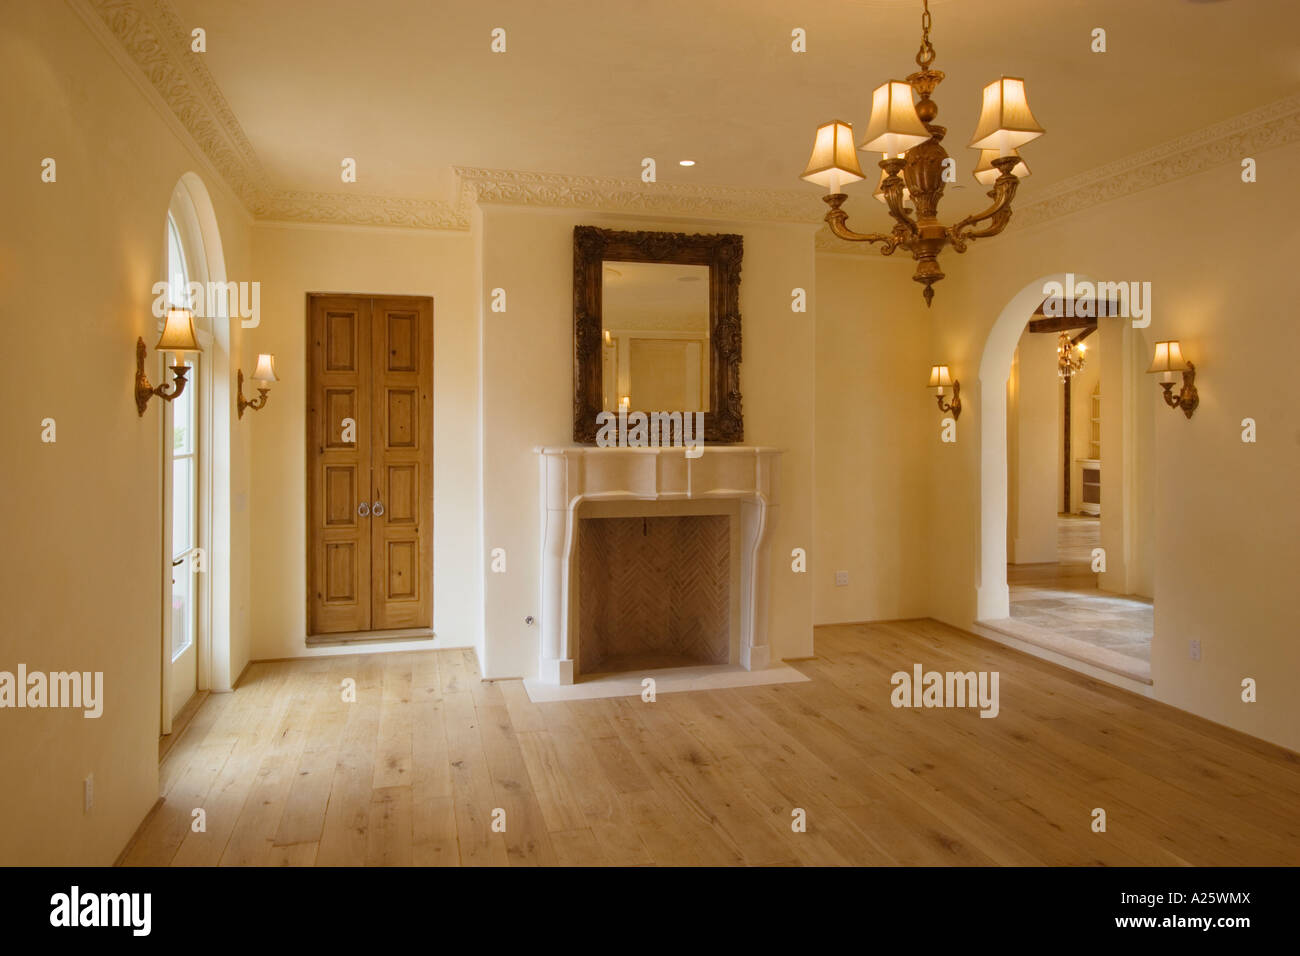 Formal DINING ROOM With Fireplace Hardwood Floors And Interior Lighting CALIFORNIA LUXURY HOME